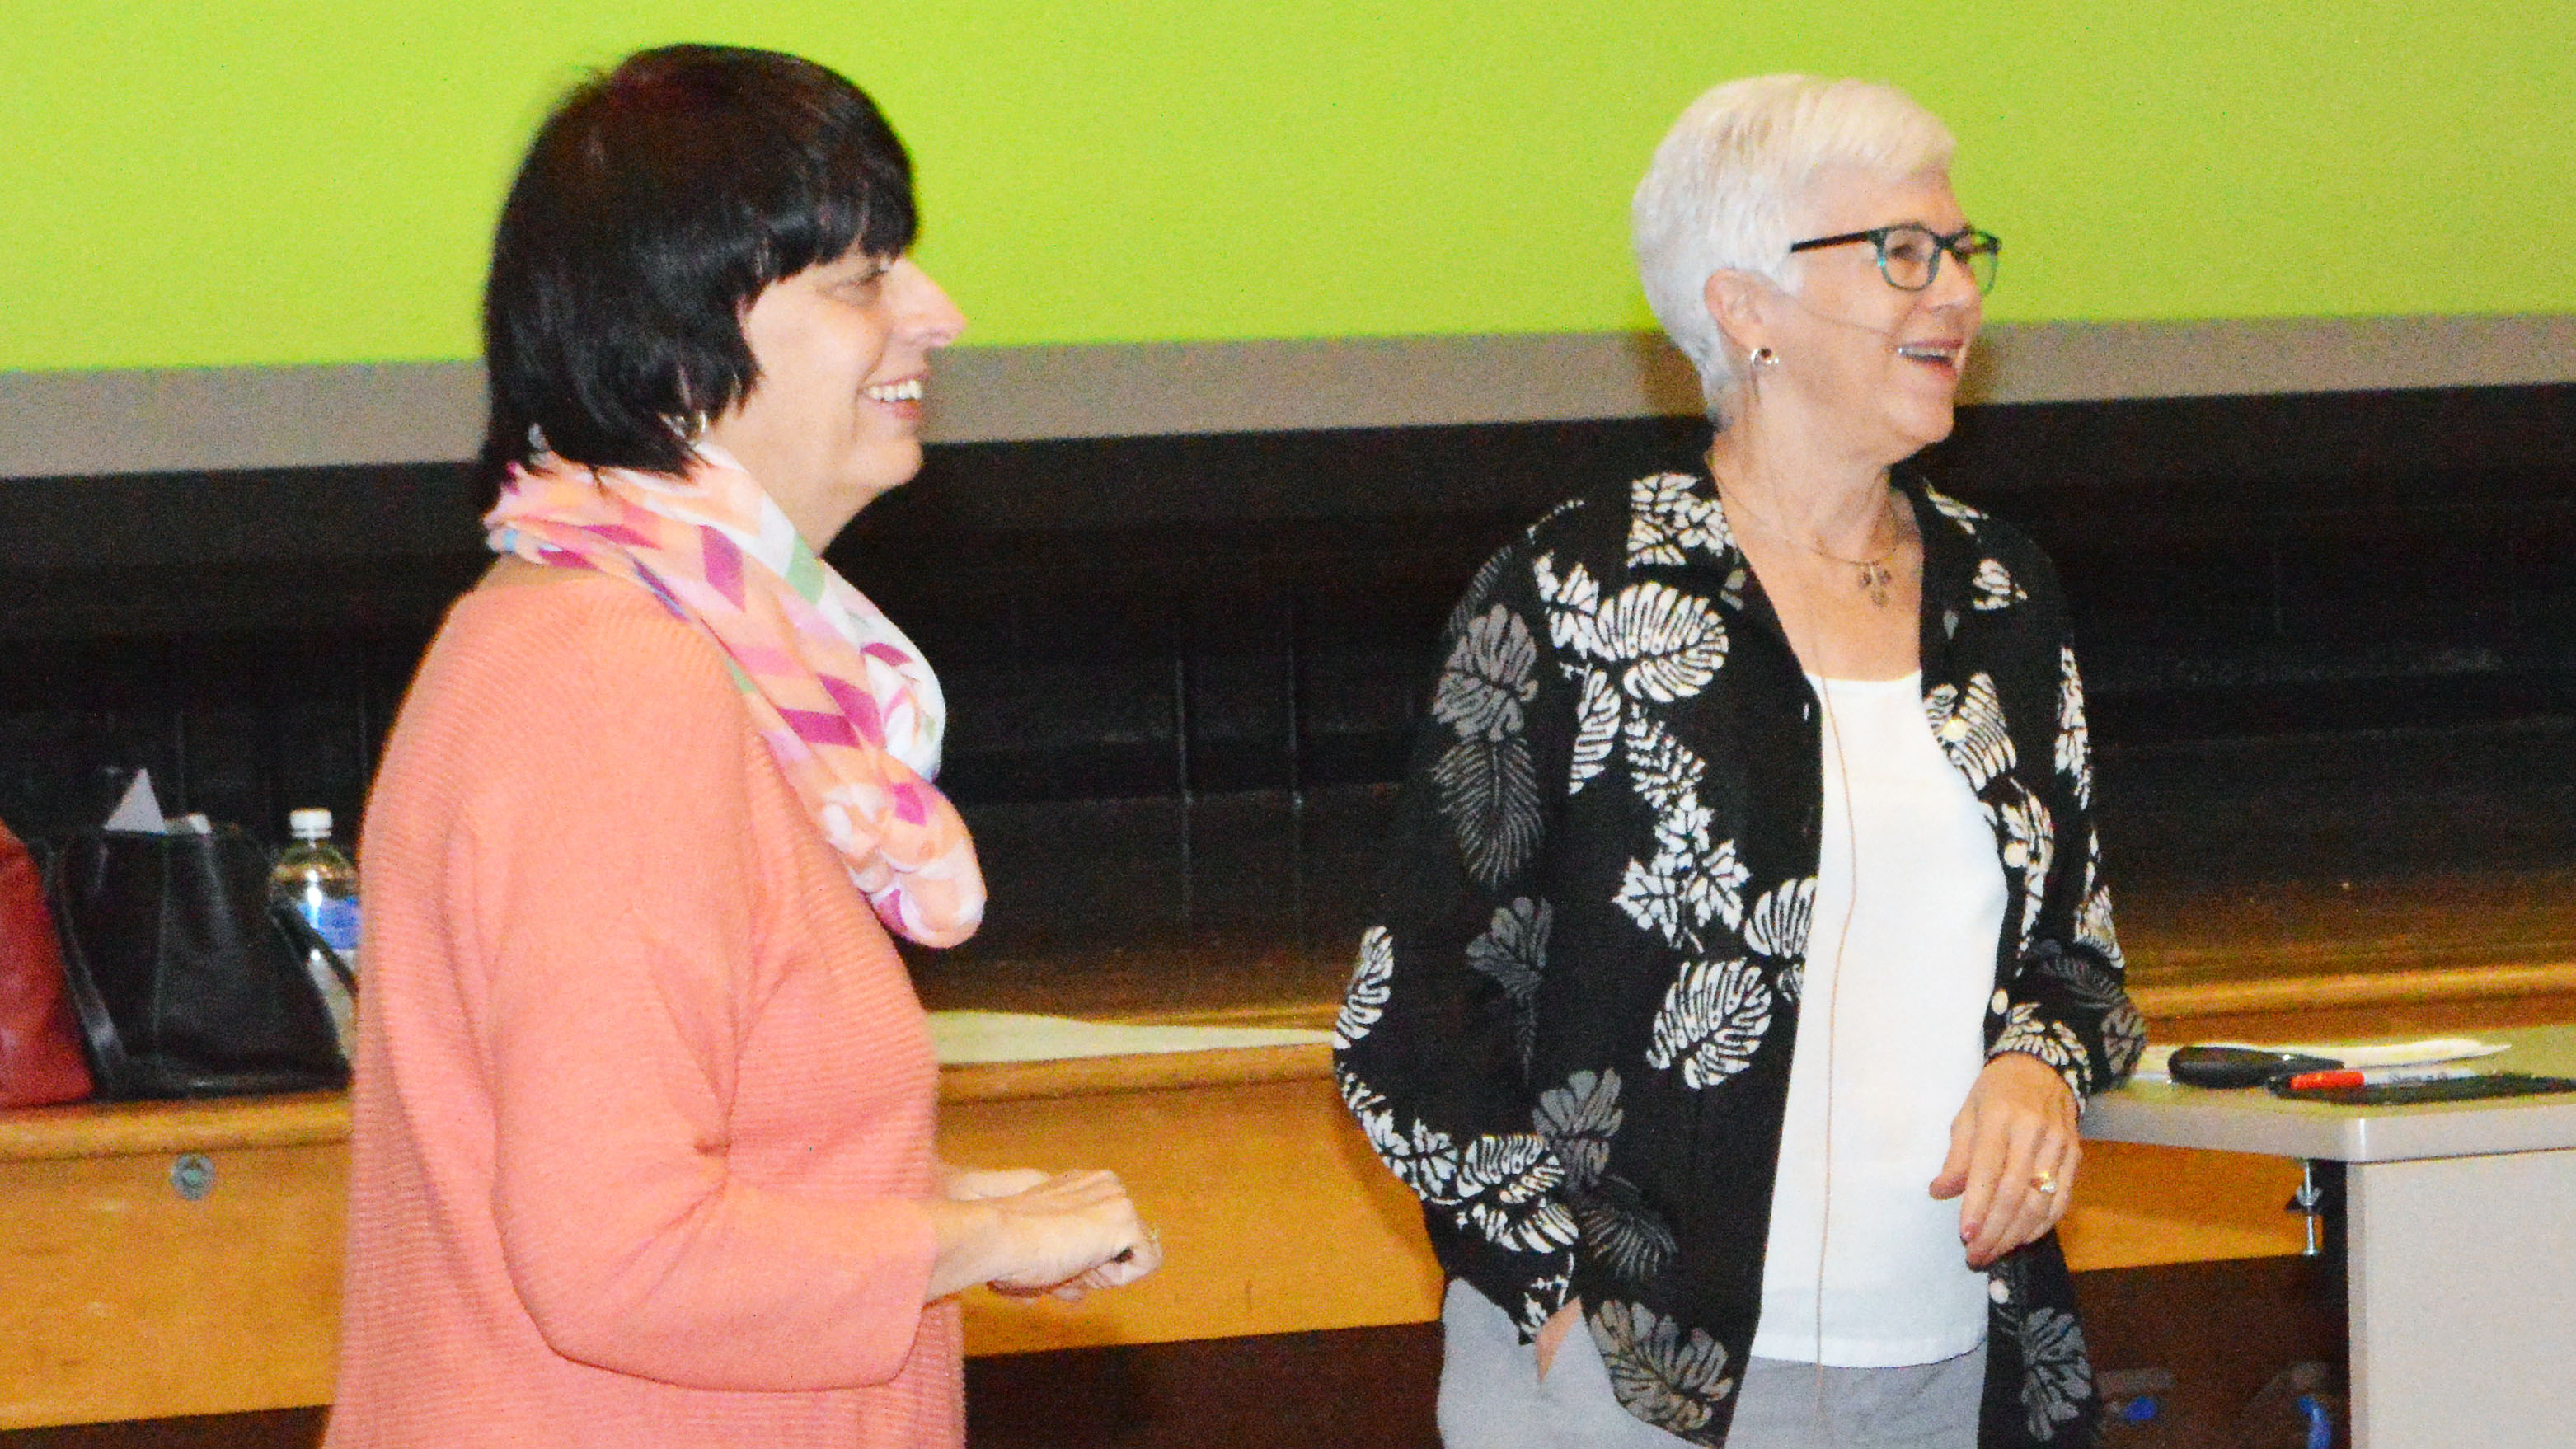 Cynthia Simpson, left, and Donna Dean, with the Association for Women in Science, lead a mentoring workshop Friday, Aug. 26, 2016, in Hardin Hall Auditorium.